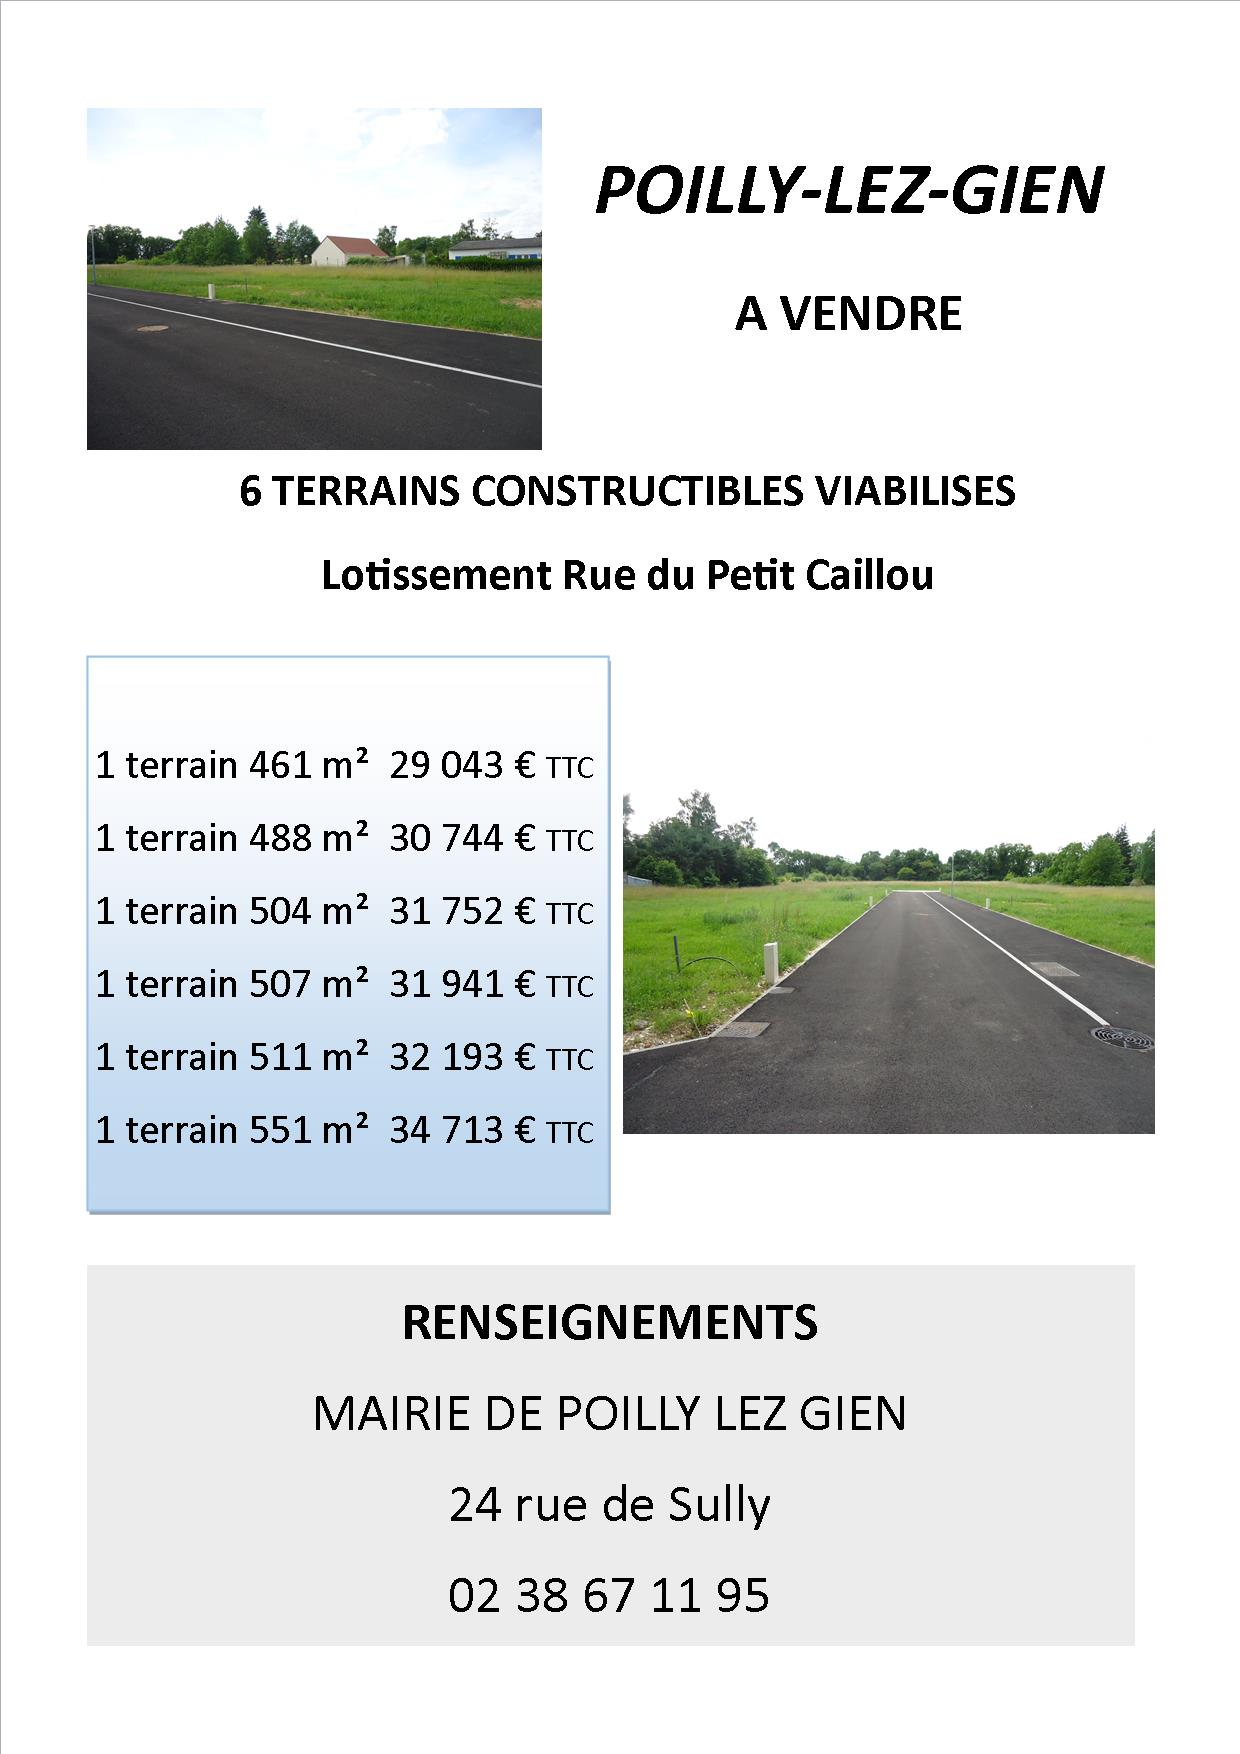 Annonce vente terrains poilly 2018